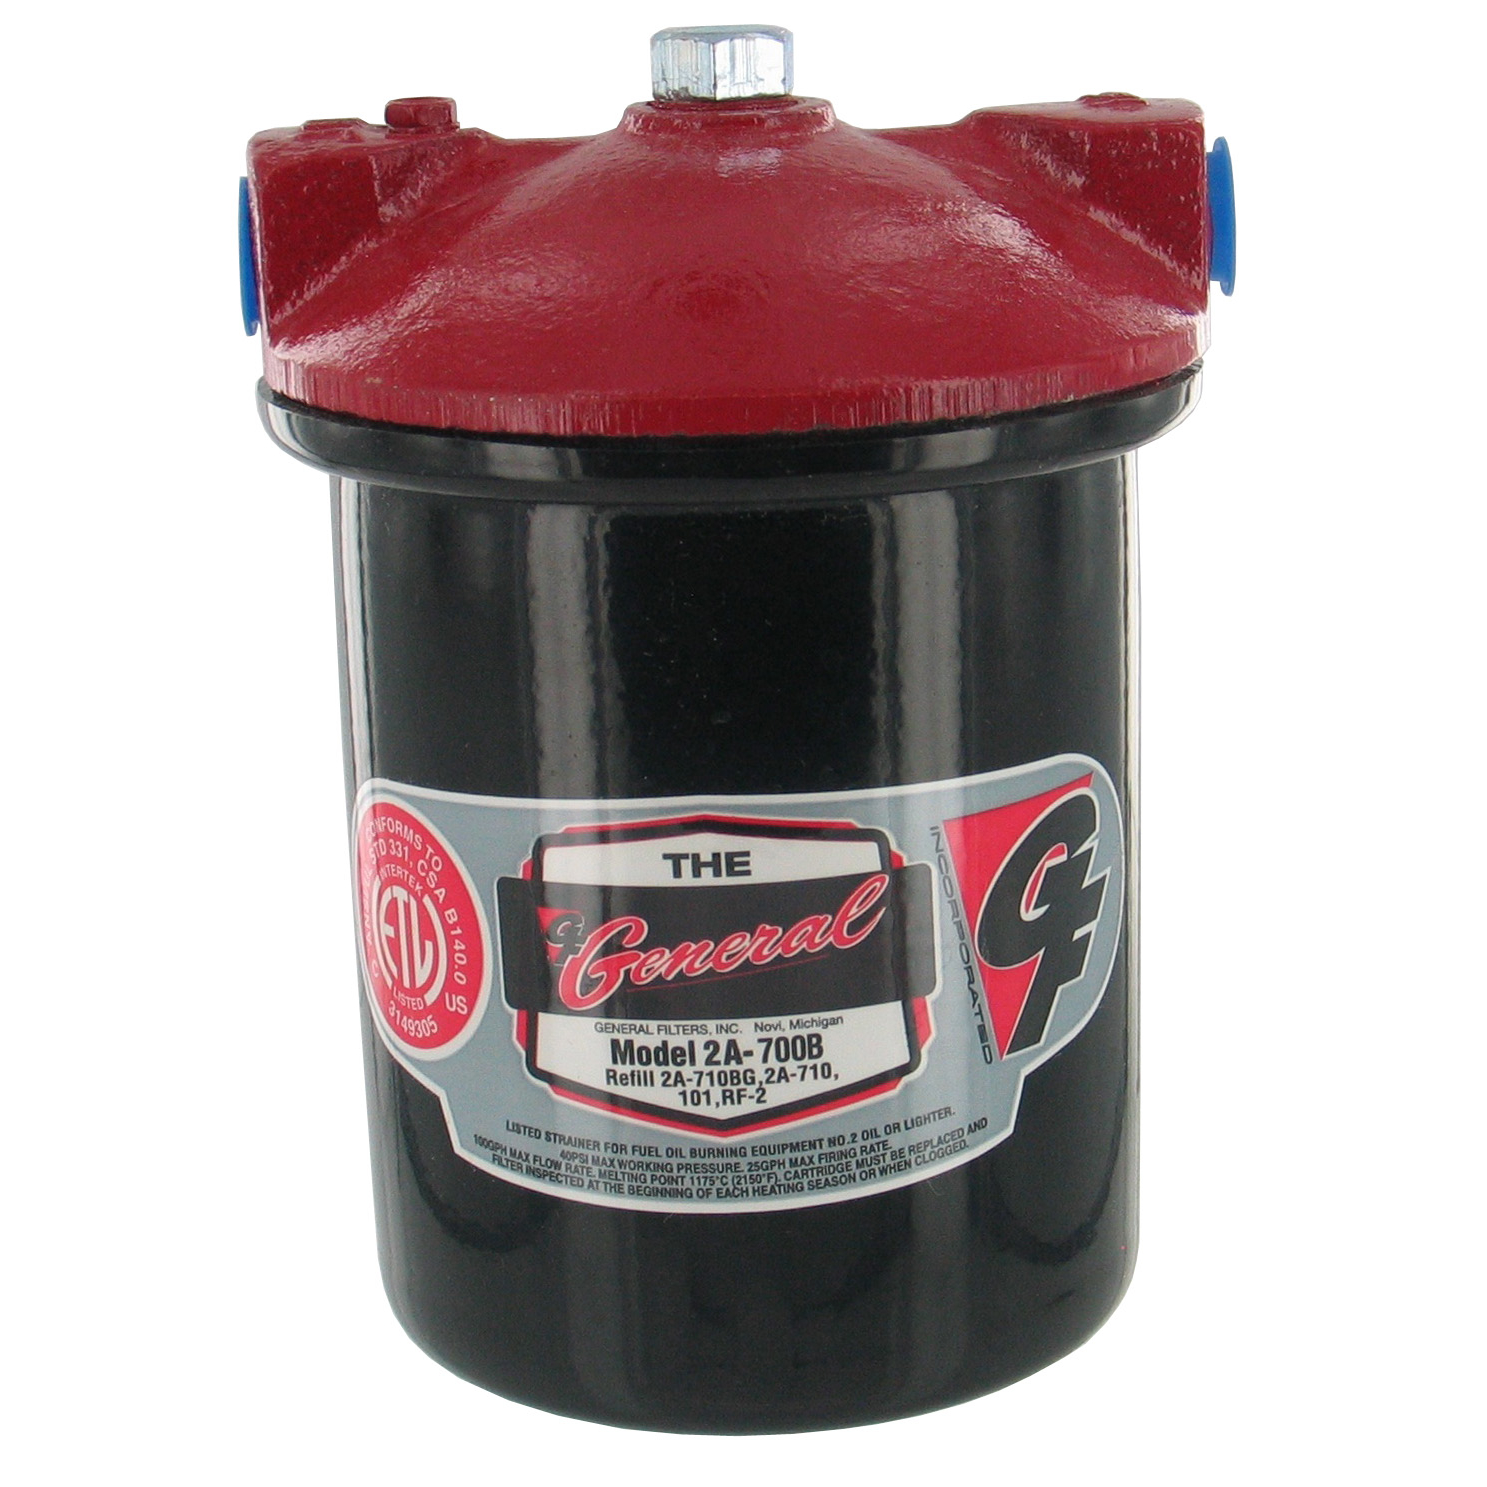 "Gneral Filter 2A-700B 3/8"" 2A-700B Galvanized Steel Fuel Oil Filter"